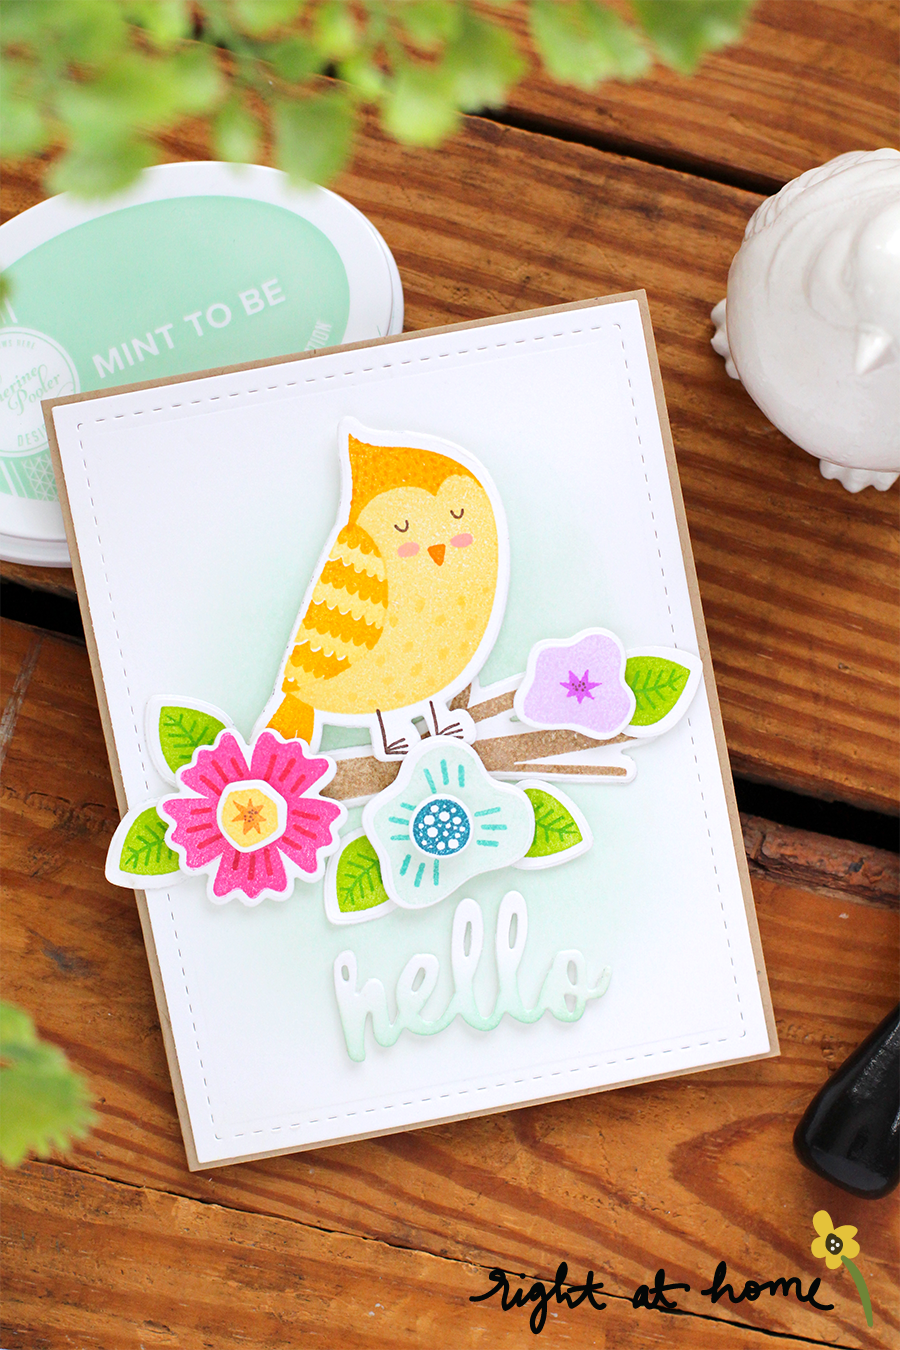 Spring Hello Cozy Cardinal Card // National Craft Month with Right at Home + Friends - rightathomeshop.com/blog